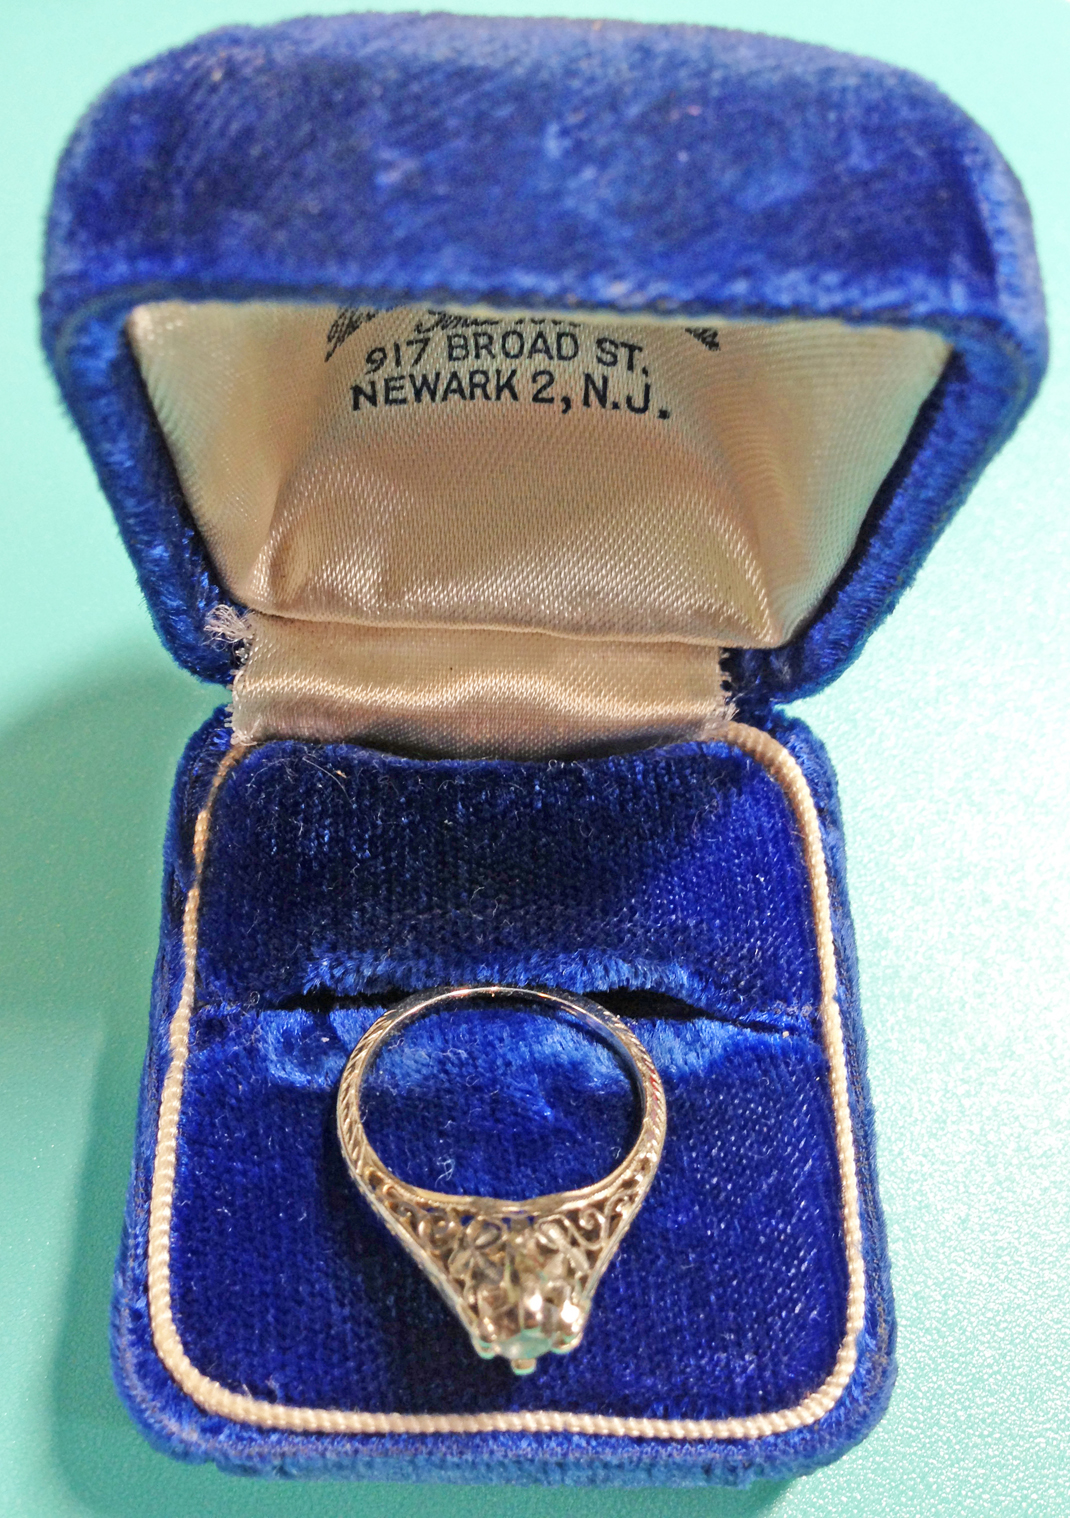 Beatrice Agnes Reynolds's engagement ring. (Photo courtesy of the author)